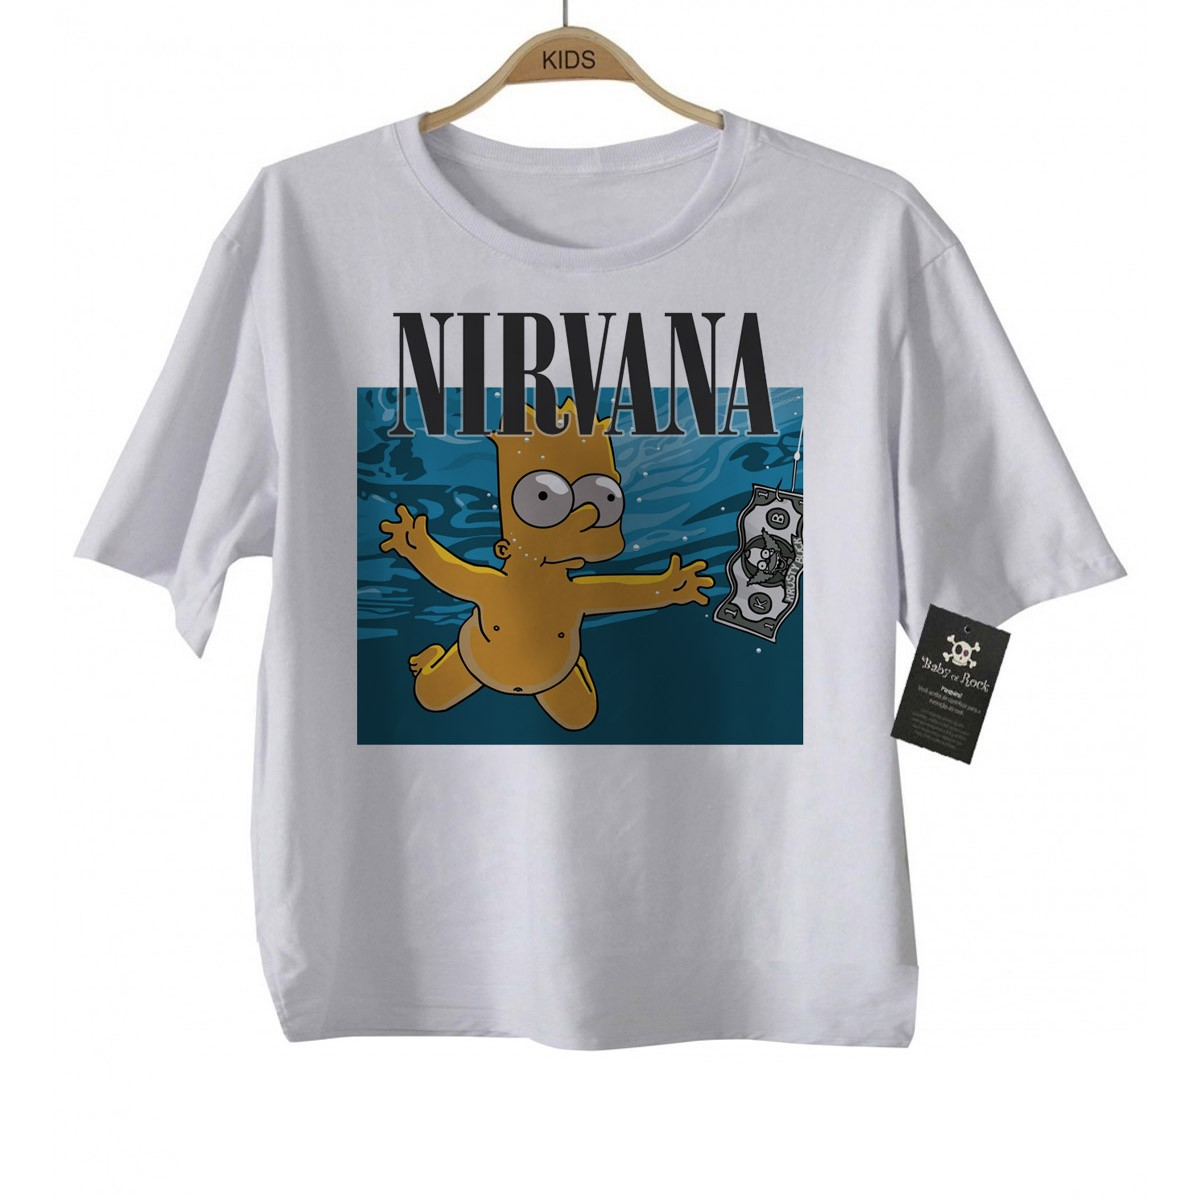 Camiseta de Rock Kids Nirvana - Bart Nevermind D - White - BABY MONSTER ... 324383c62ef